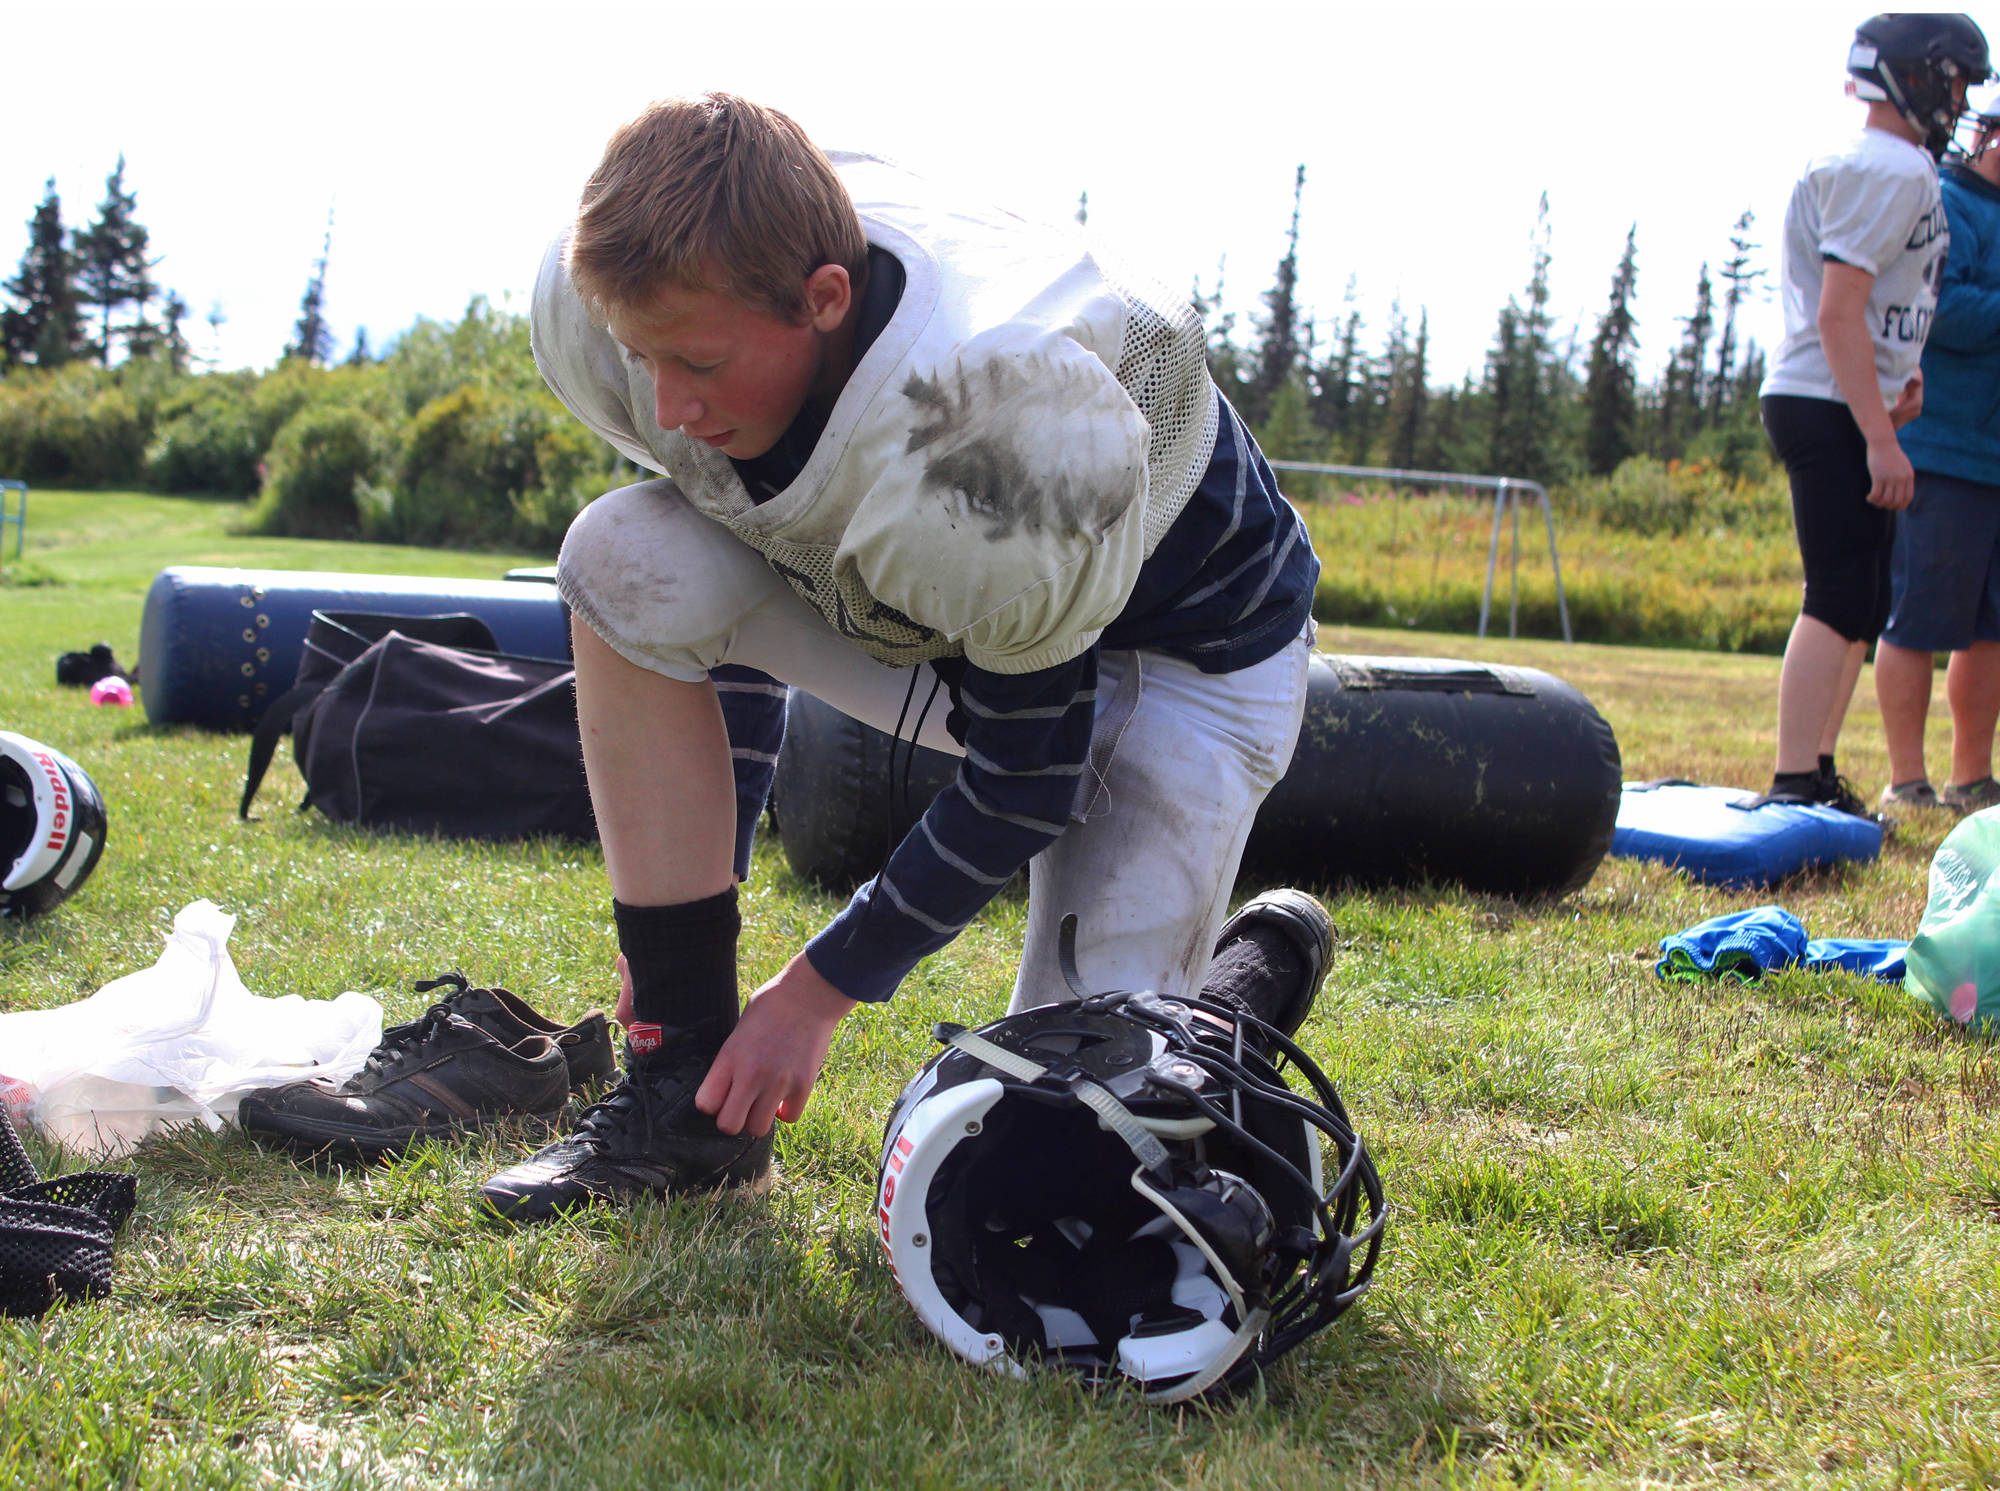 Foma Reutov, a freshman, ties up his shoes before a Cougars football practice Friday, Sept. 1, 2017 at McNeil Canyon Elementary in Fritz Creek, Alaska. The team, usually made up of a mix of students from the Russian Old Believer Villages Voznesenka, Razdolna and Kachemak-Selo, is in its fifth year as a varsity, 11-man program. (Photo by Megan Pacer/Homer News)